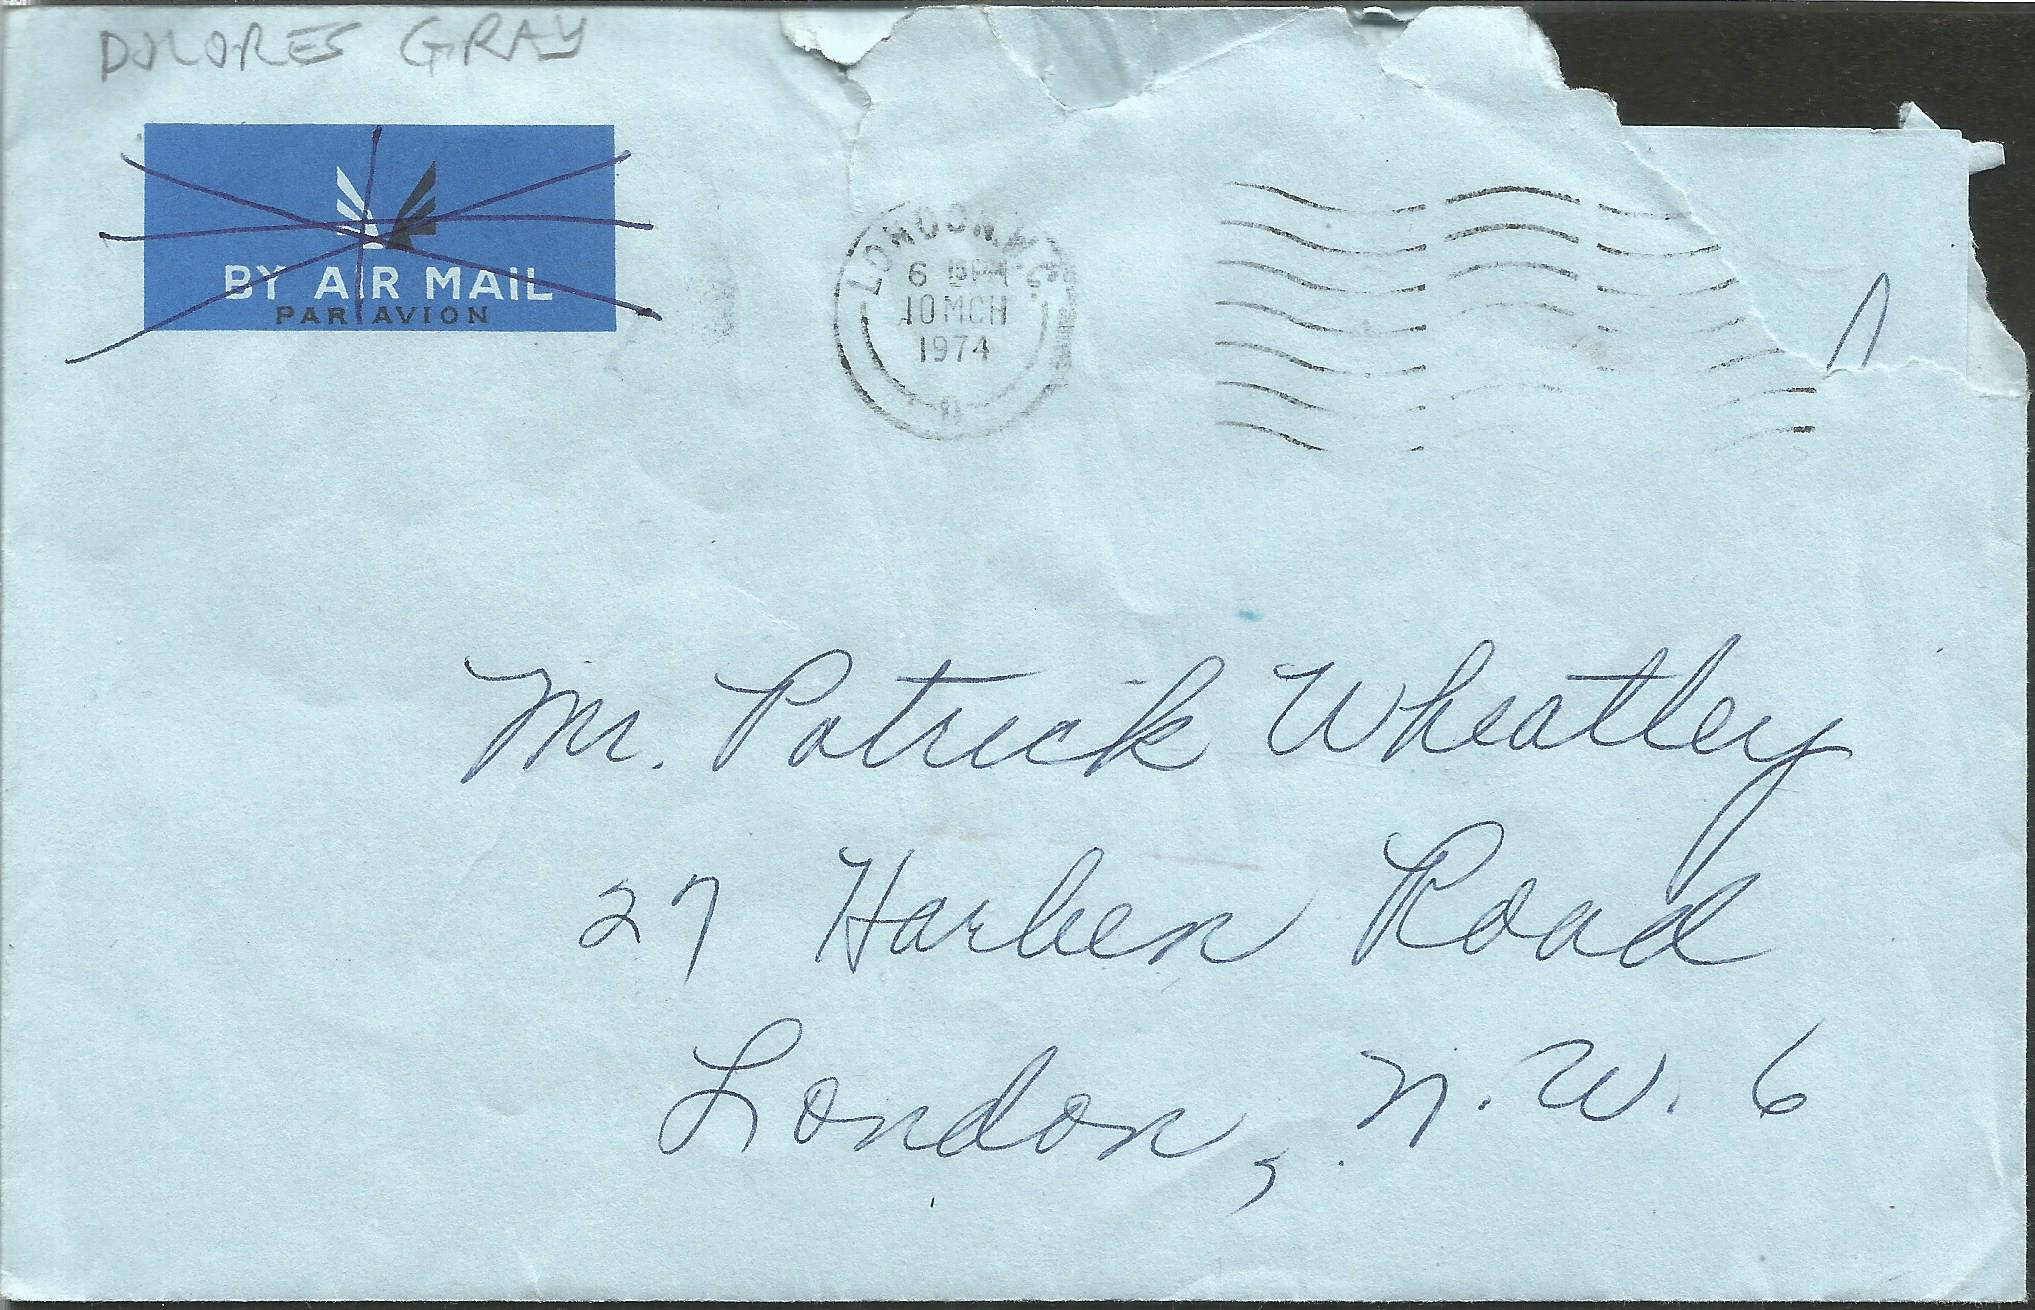 Dolores Gray ALS dated 9th March 1974. This hand written letter is on headed paper from Savoy